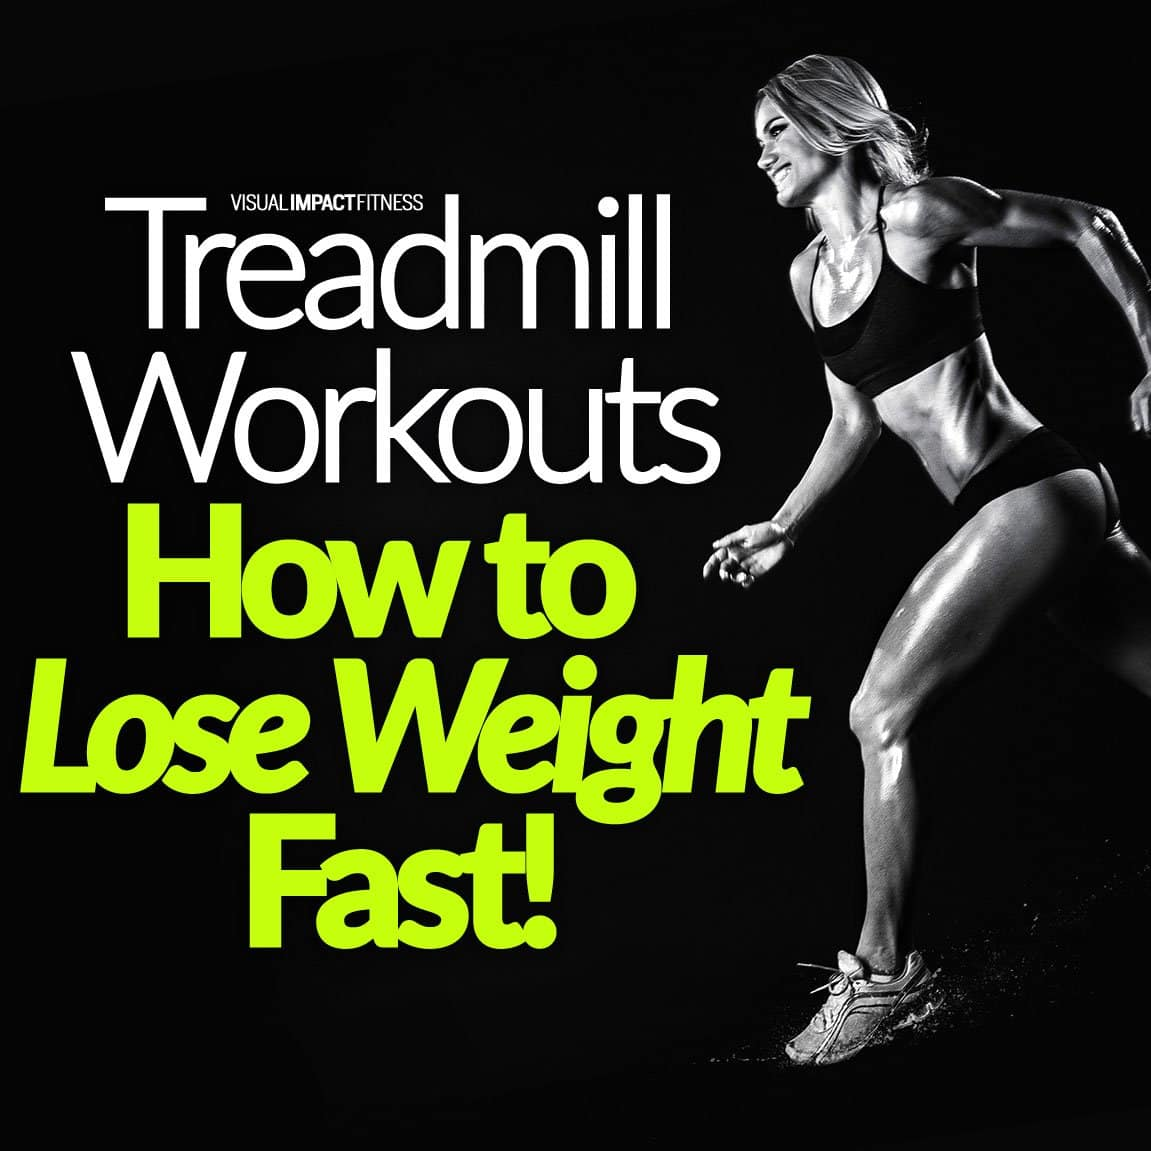 Treadmill Workouts How to Lose Weight Fast